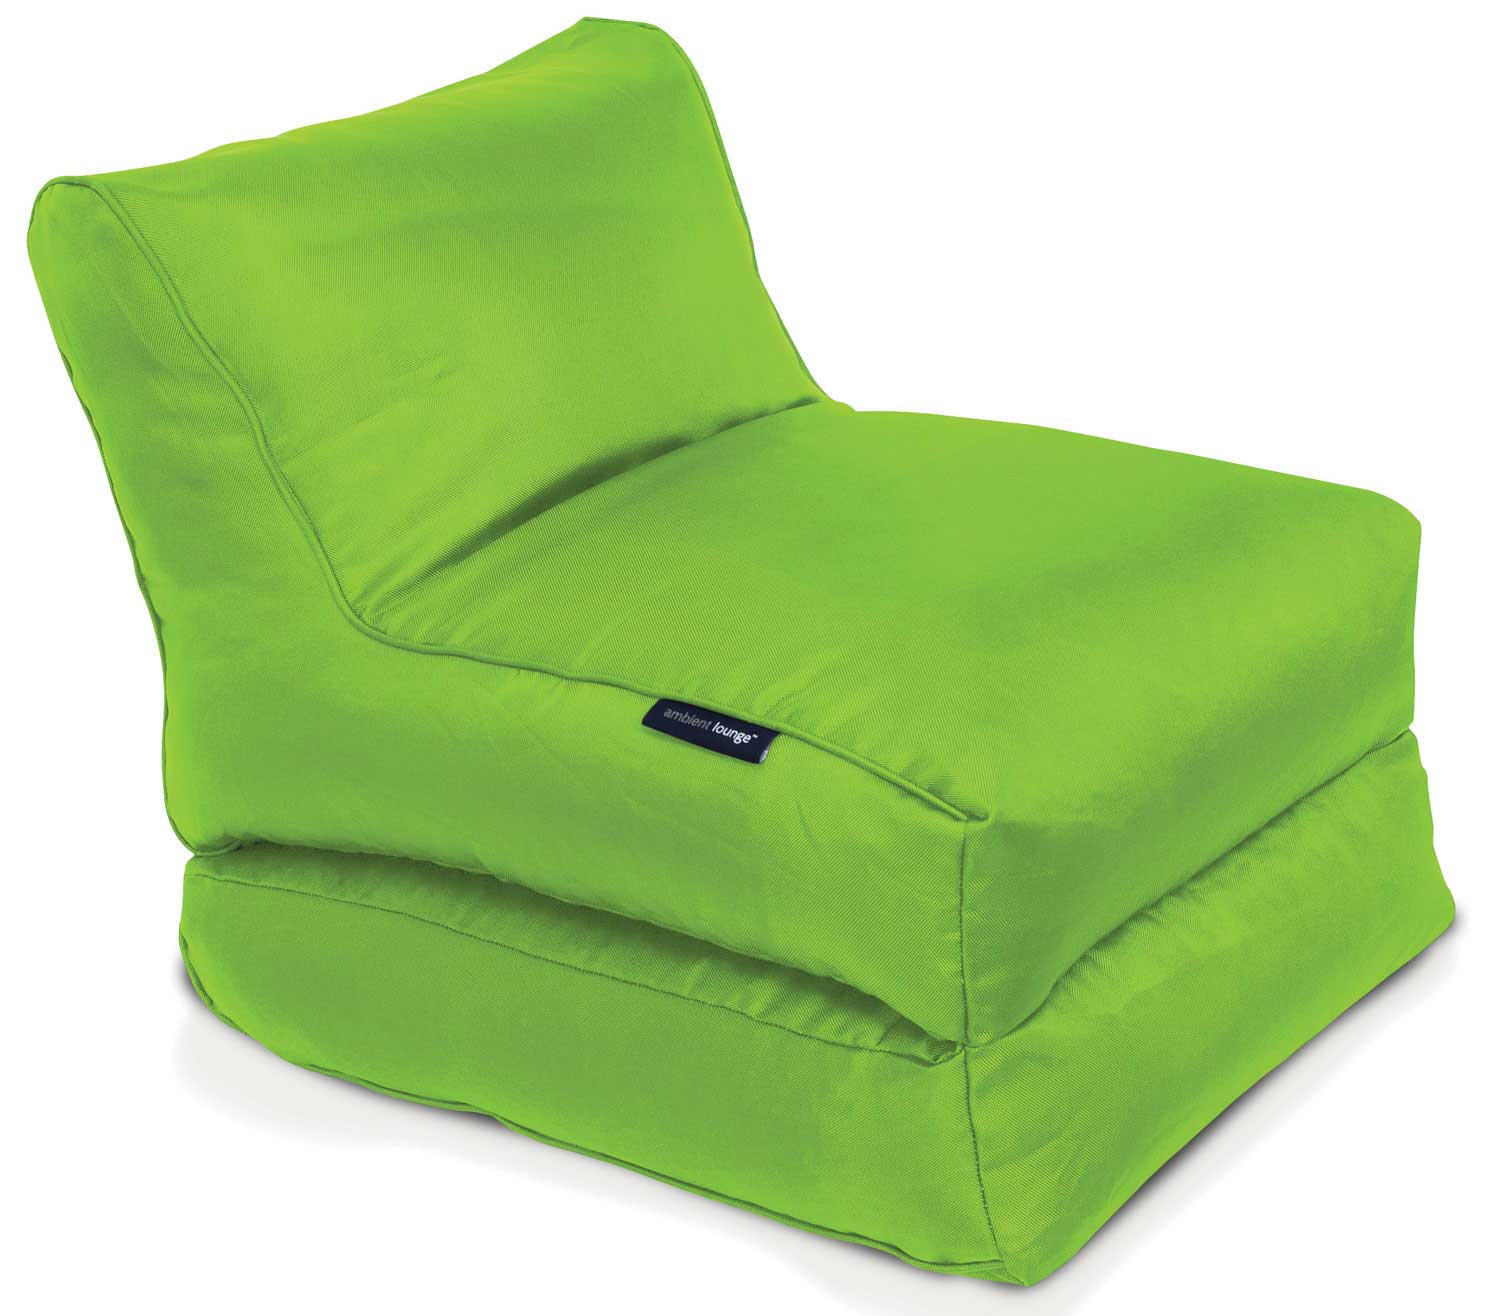 Conversion Lounger Sublime1